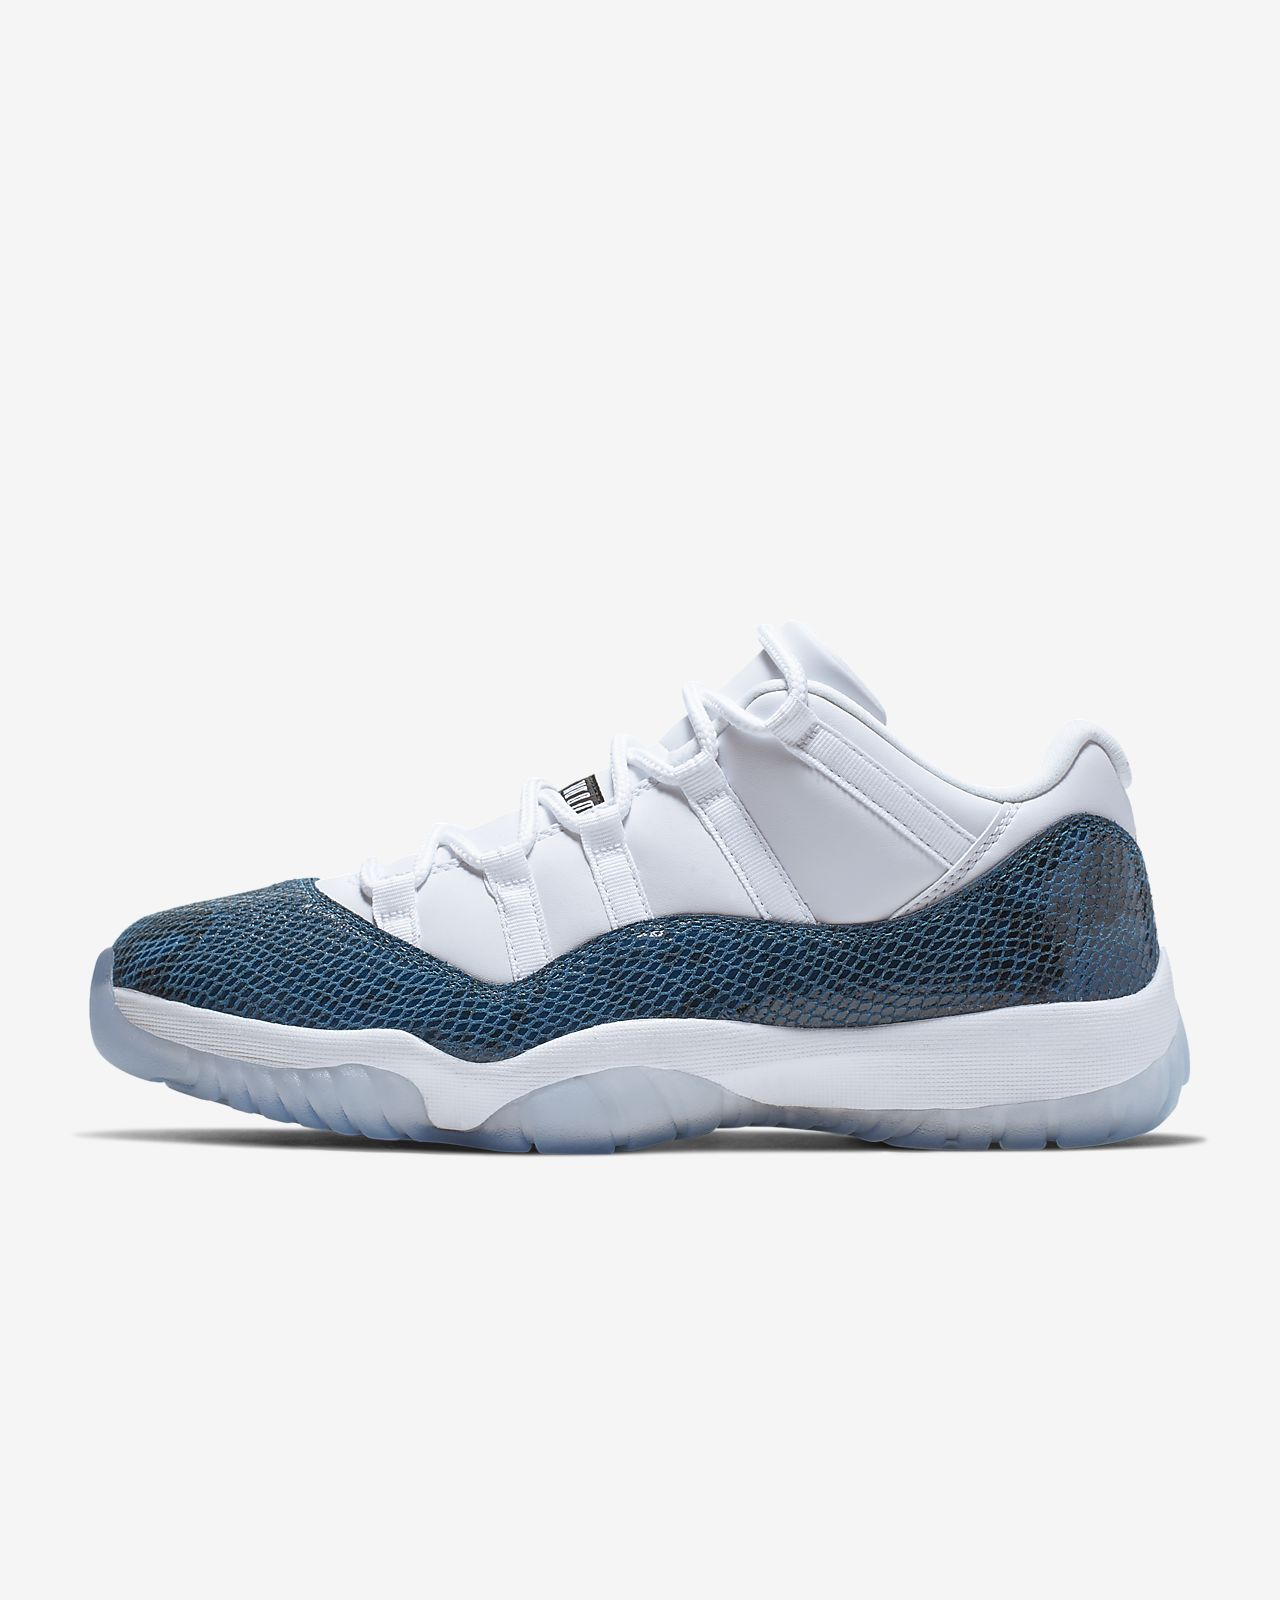 d094266c87ed Air Jordan 11 Retro Low LE Men s Shoe. Nike.com